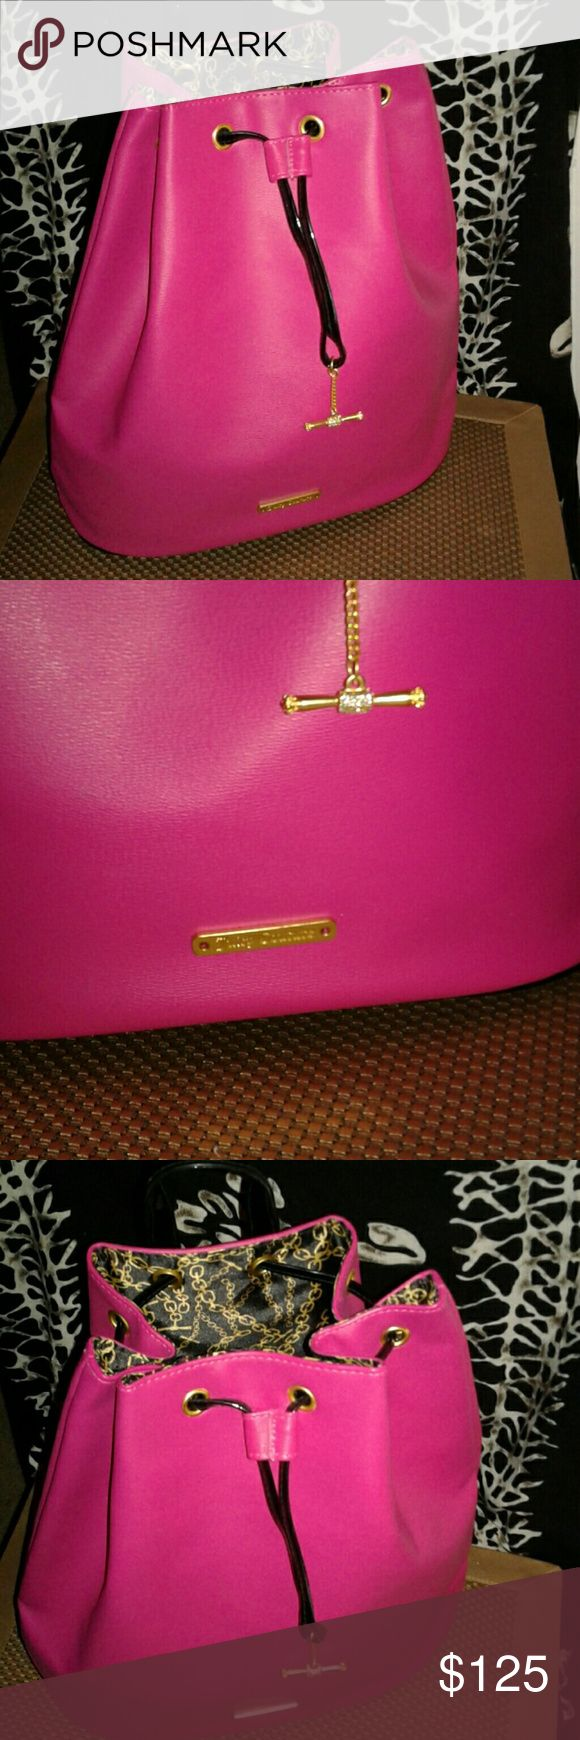 Juicy Couture Backpack/Purse bright pink and shiny black  Beautiful workmanship and detailed with gold accents perfect condition as shown  Excellent condition outside and inside  silk lining 15 inches wide and 13 inches length  6 inches depth  Adjustable straps approximately 40 inches to adjust length it's sturdy but not heavy heavy! just right! Lol Juicy Couture Bags Backpacks